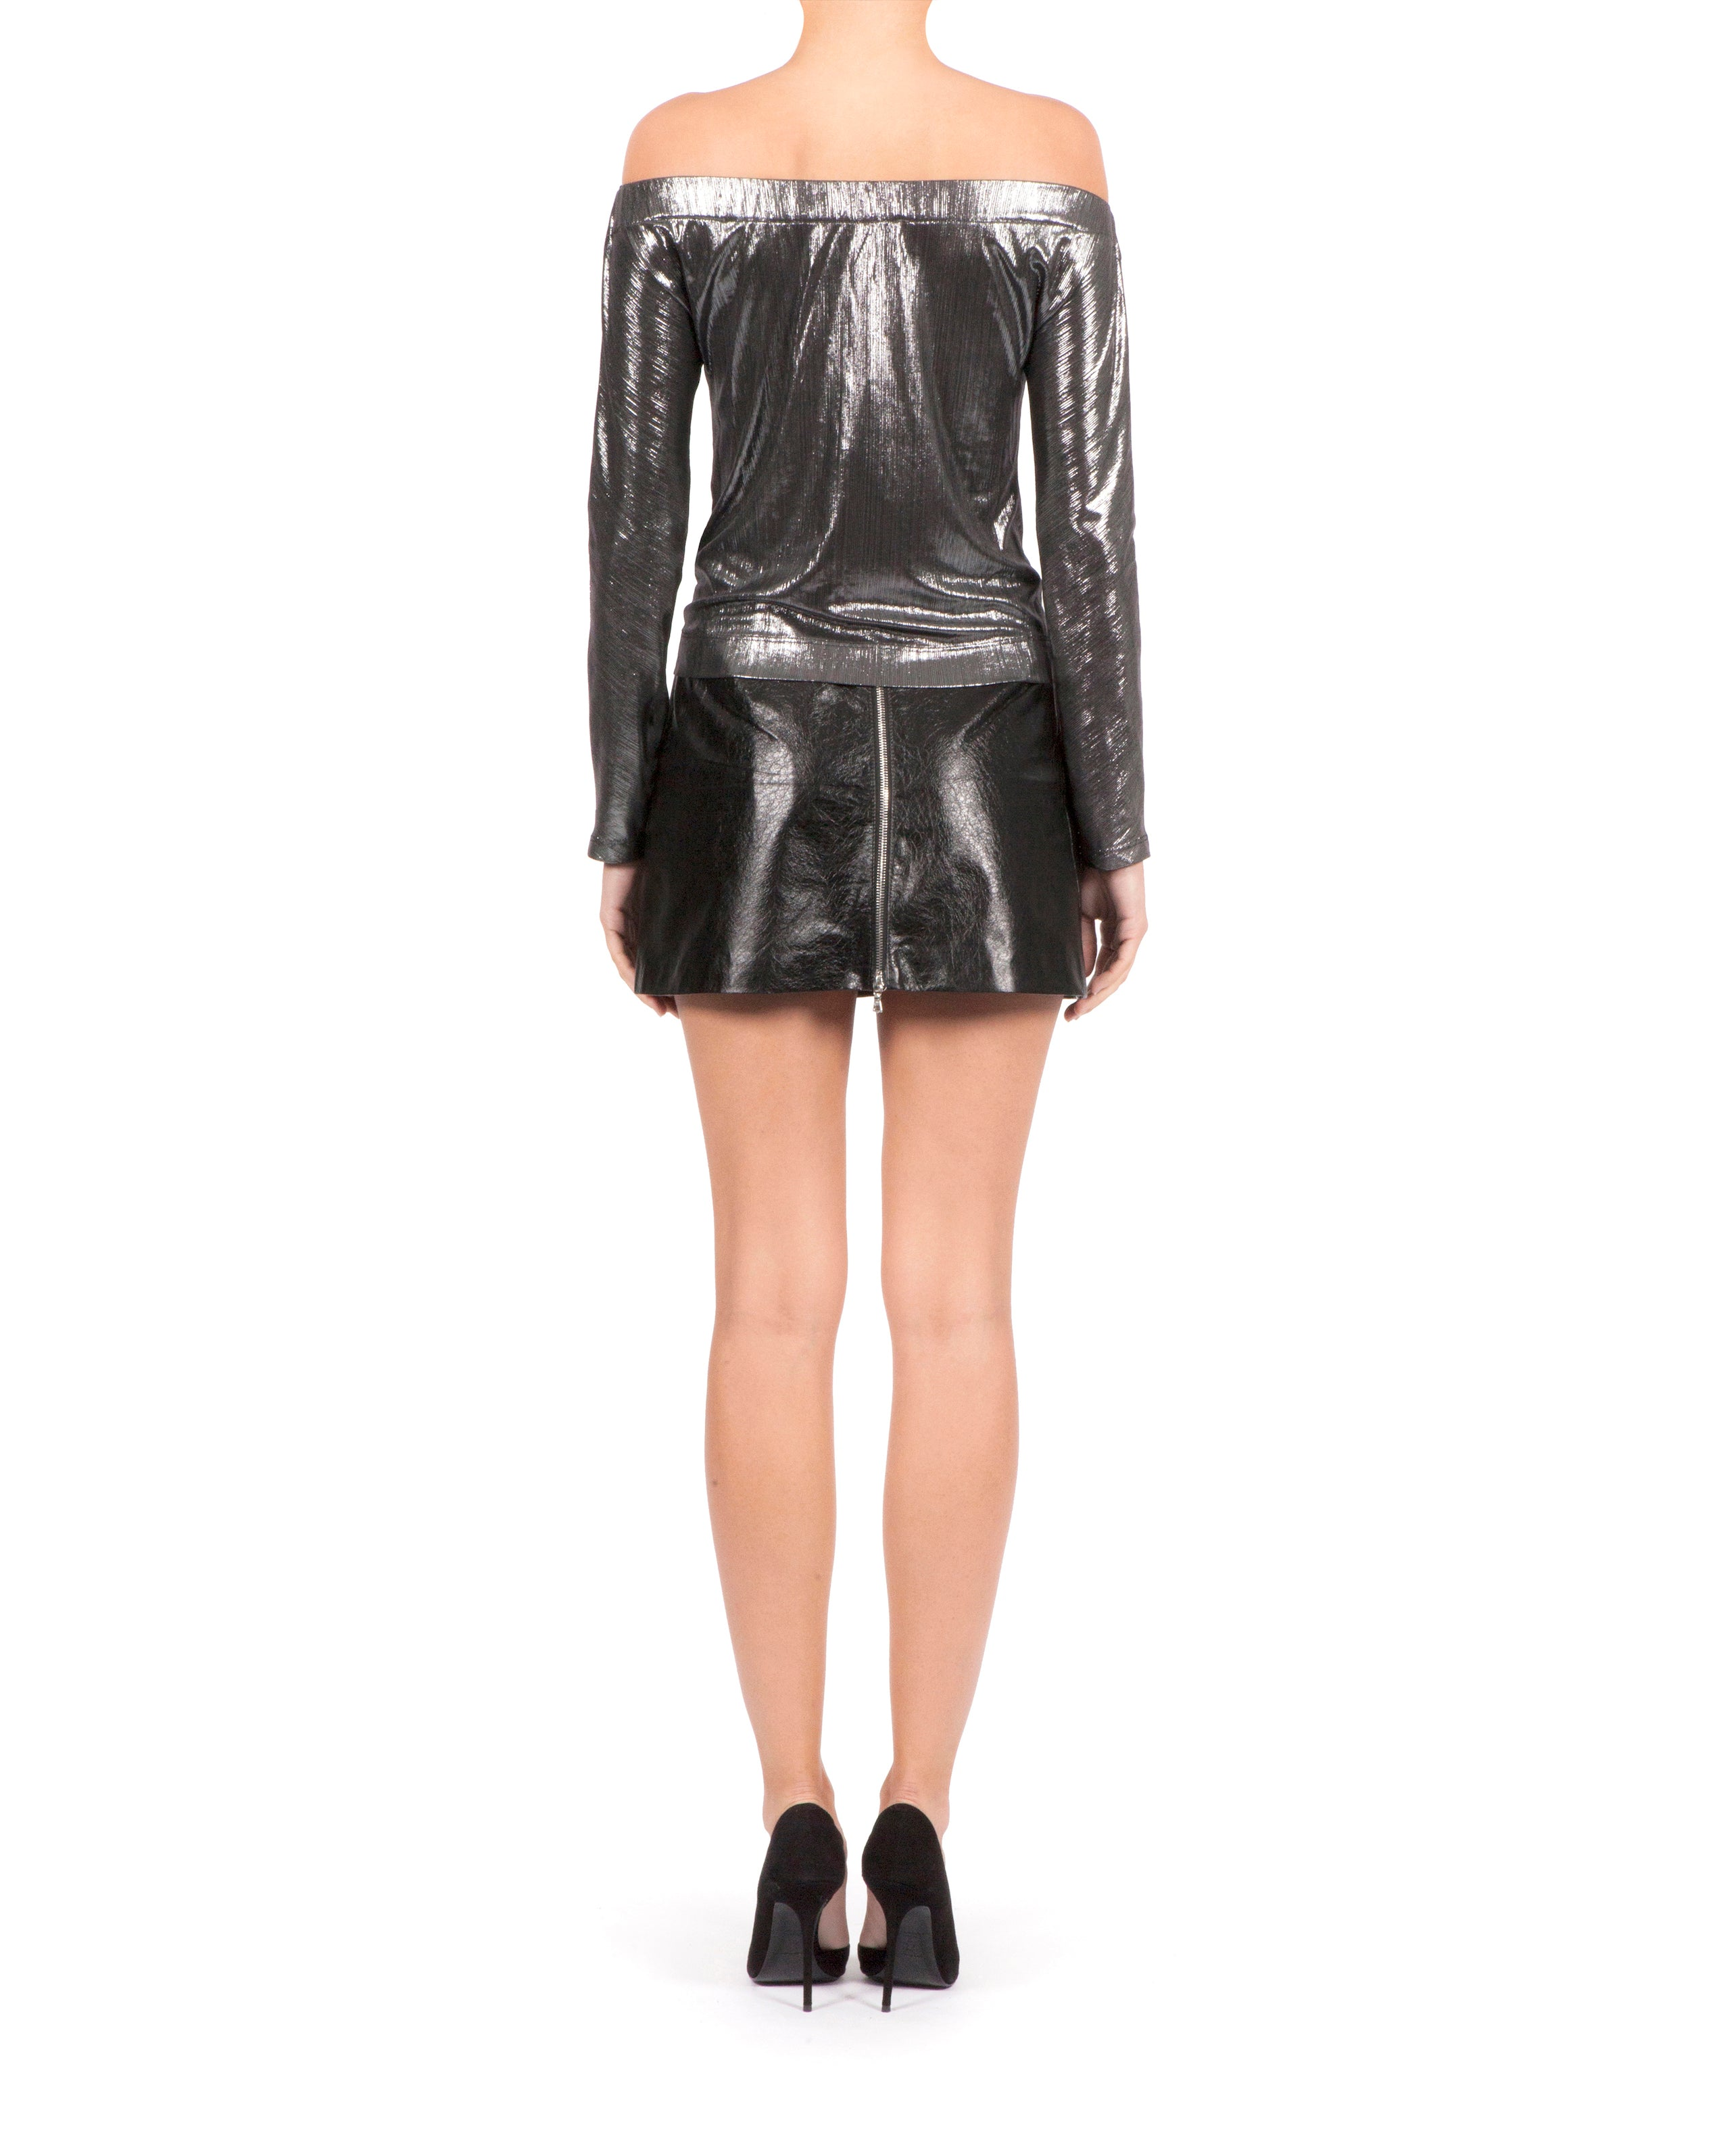 Gisele Top - Metallic Silver